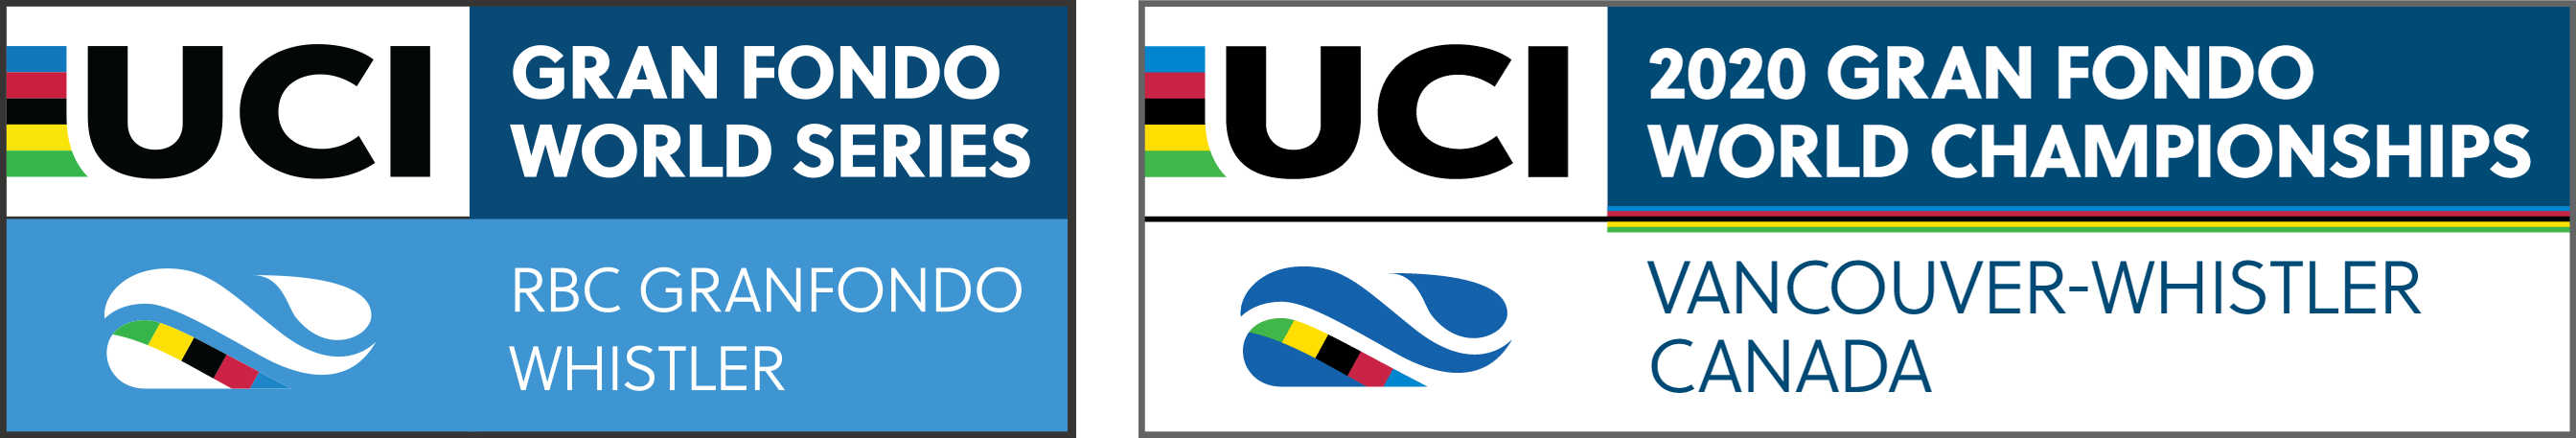 UCI Gran Fondo World Series and UCI Gran Fondo World Championships logos